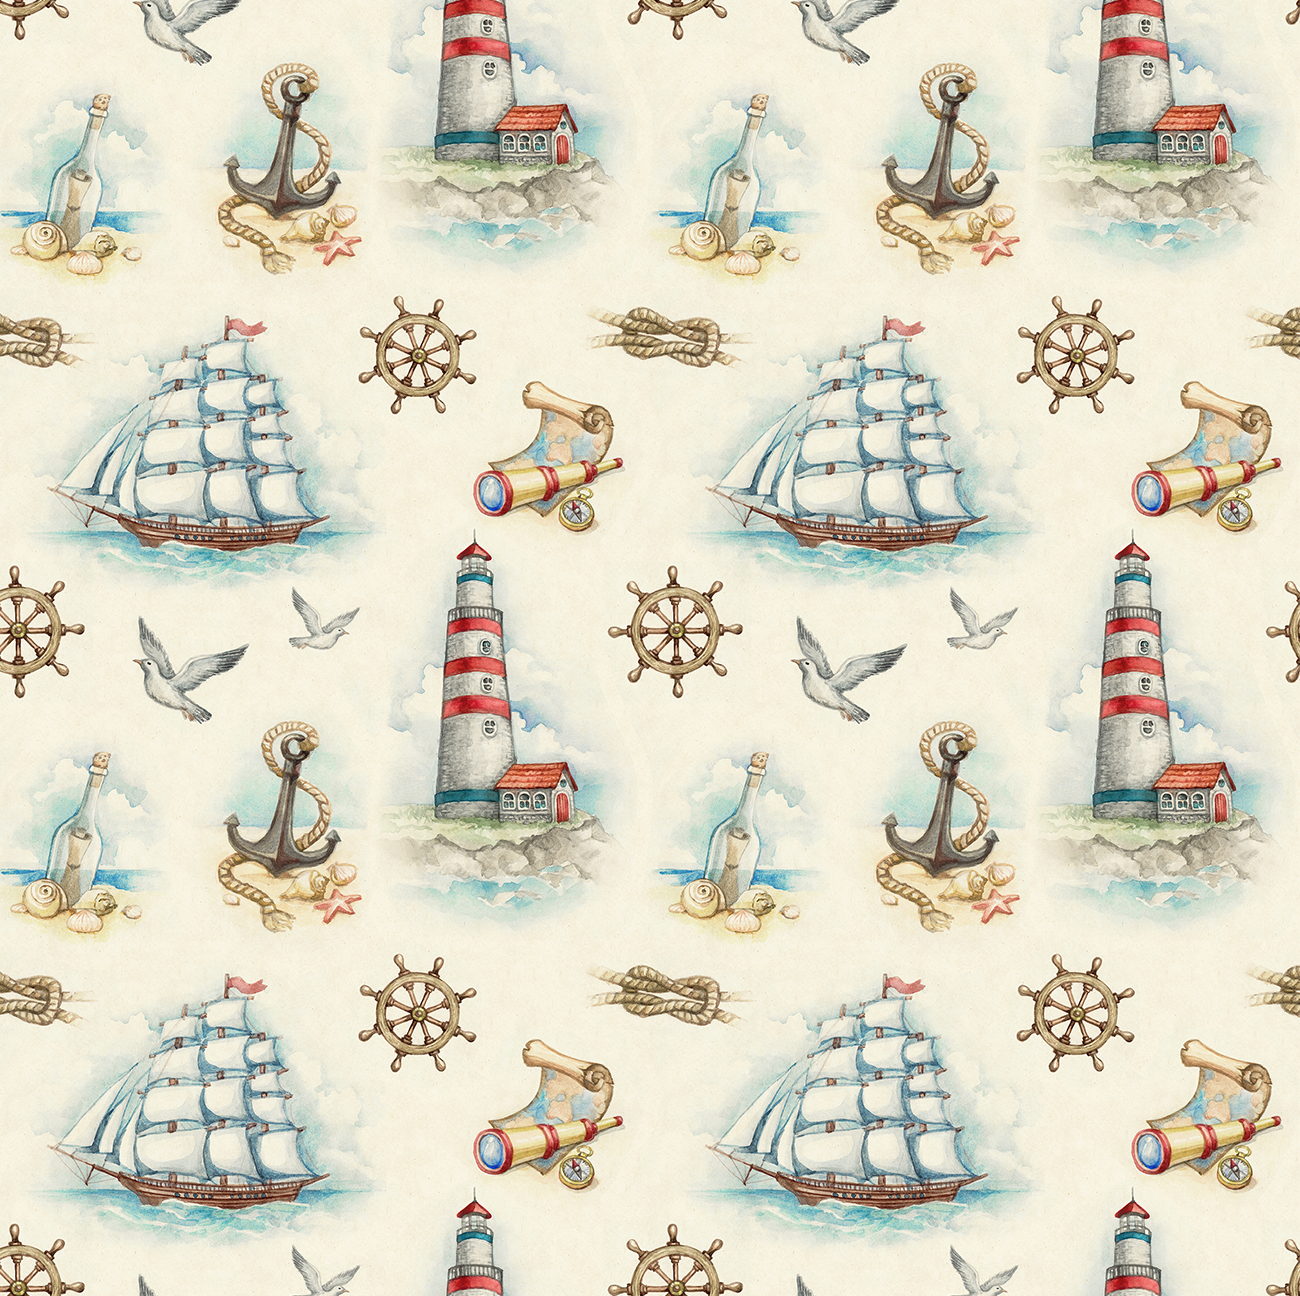 Nautical illustrations, invitations and patterns